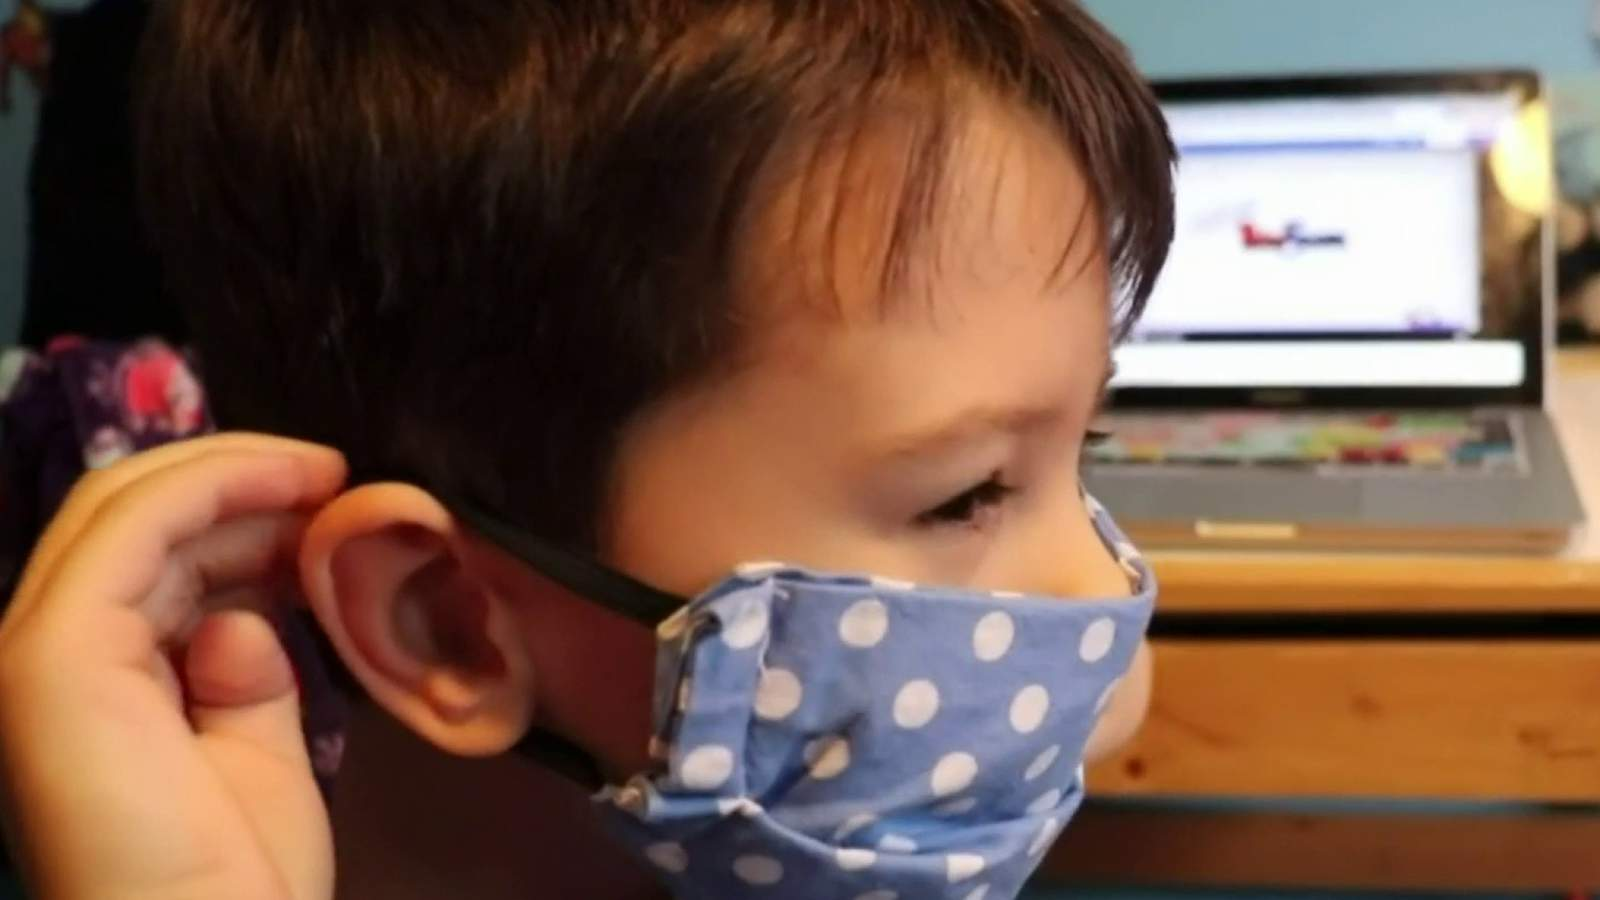 Michigan extends COVID mask mandate to children as young as 2